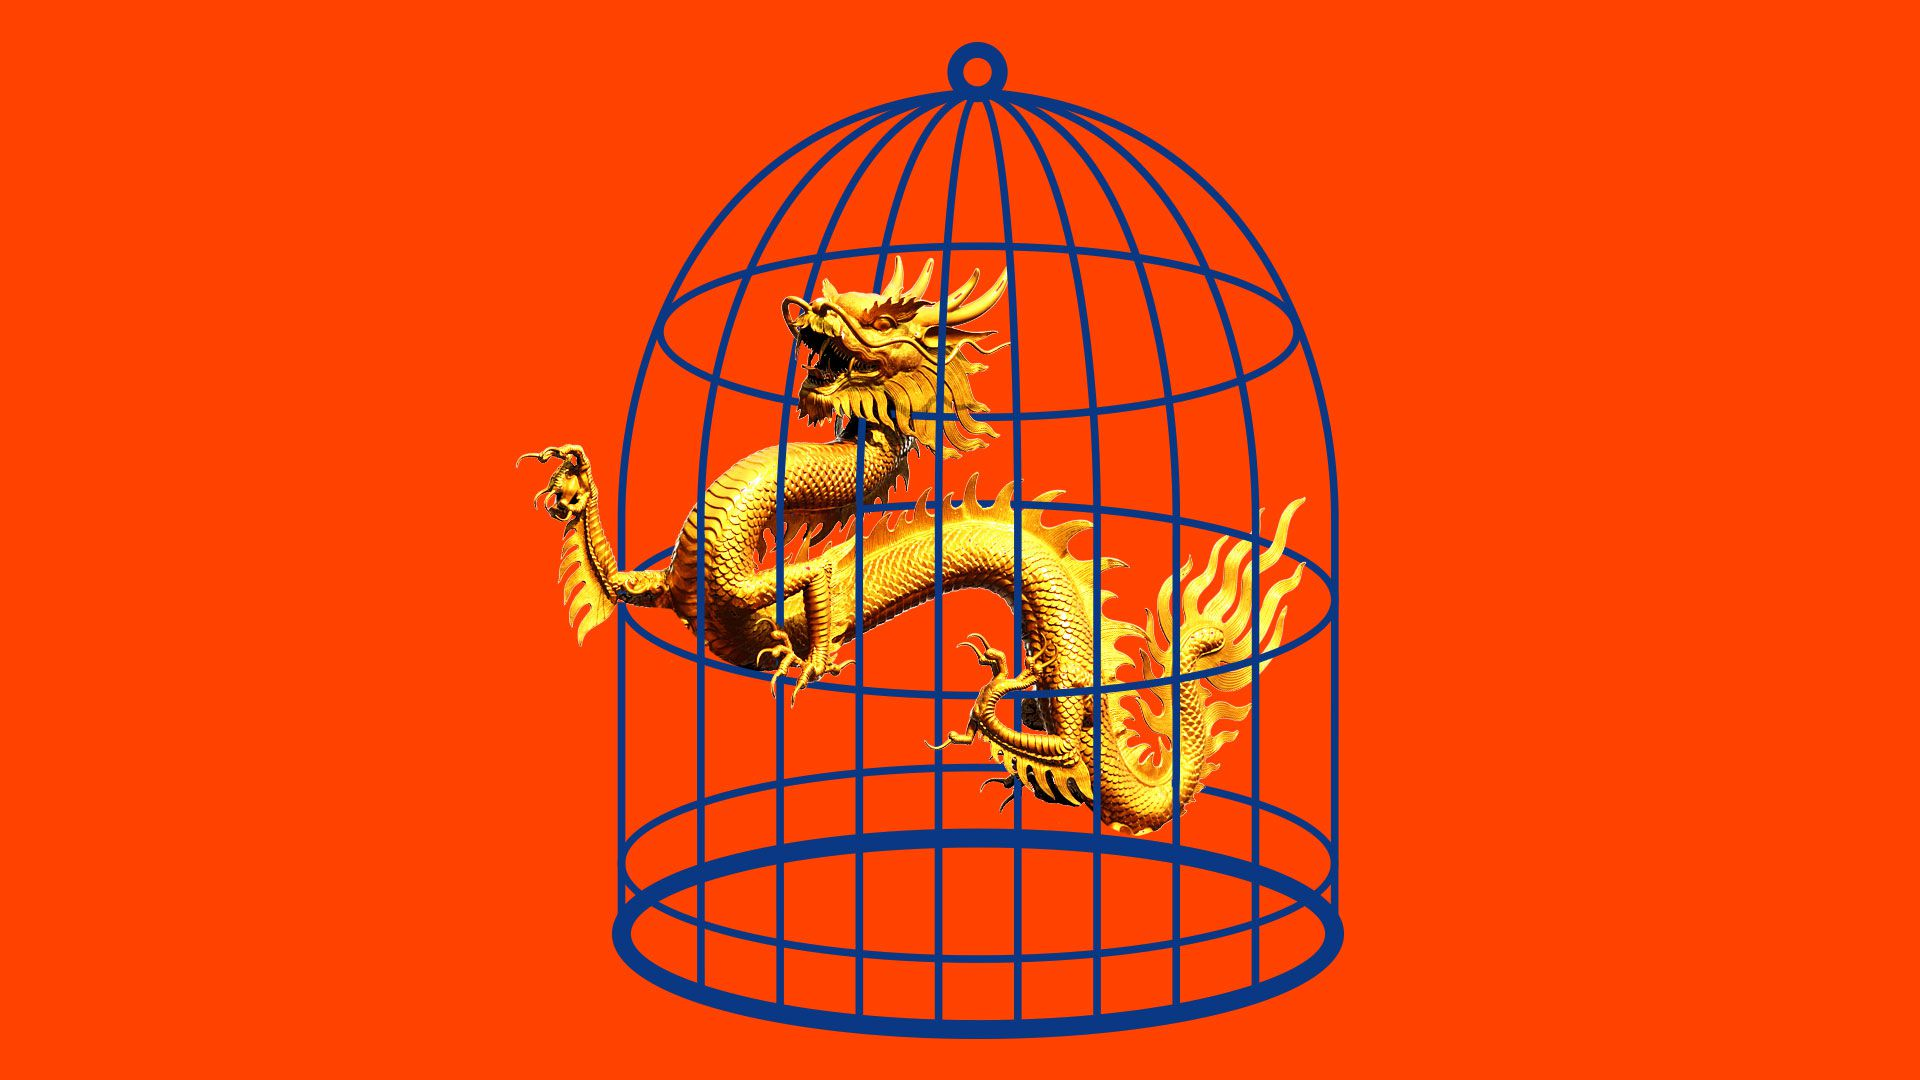 An illustration of a Chinese dragon trapped in a birdcage